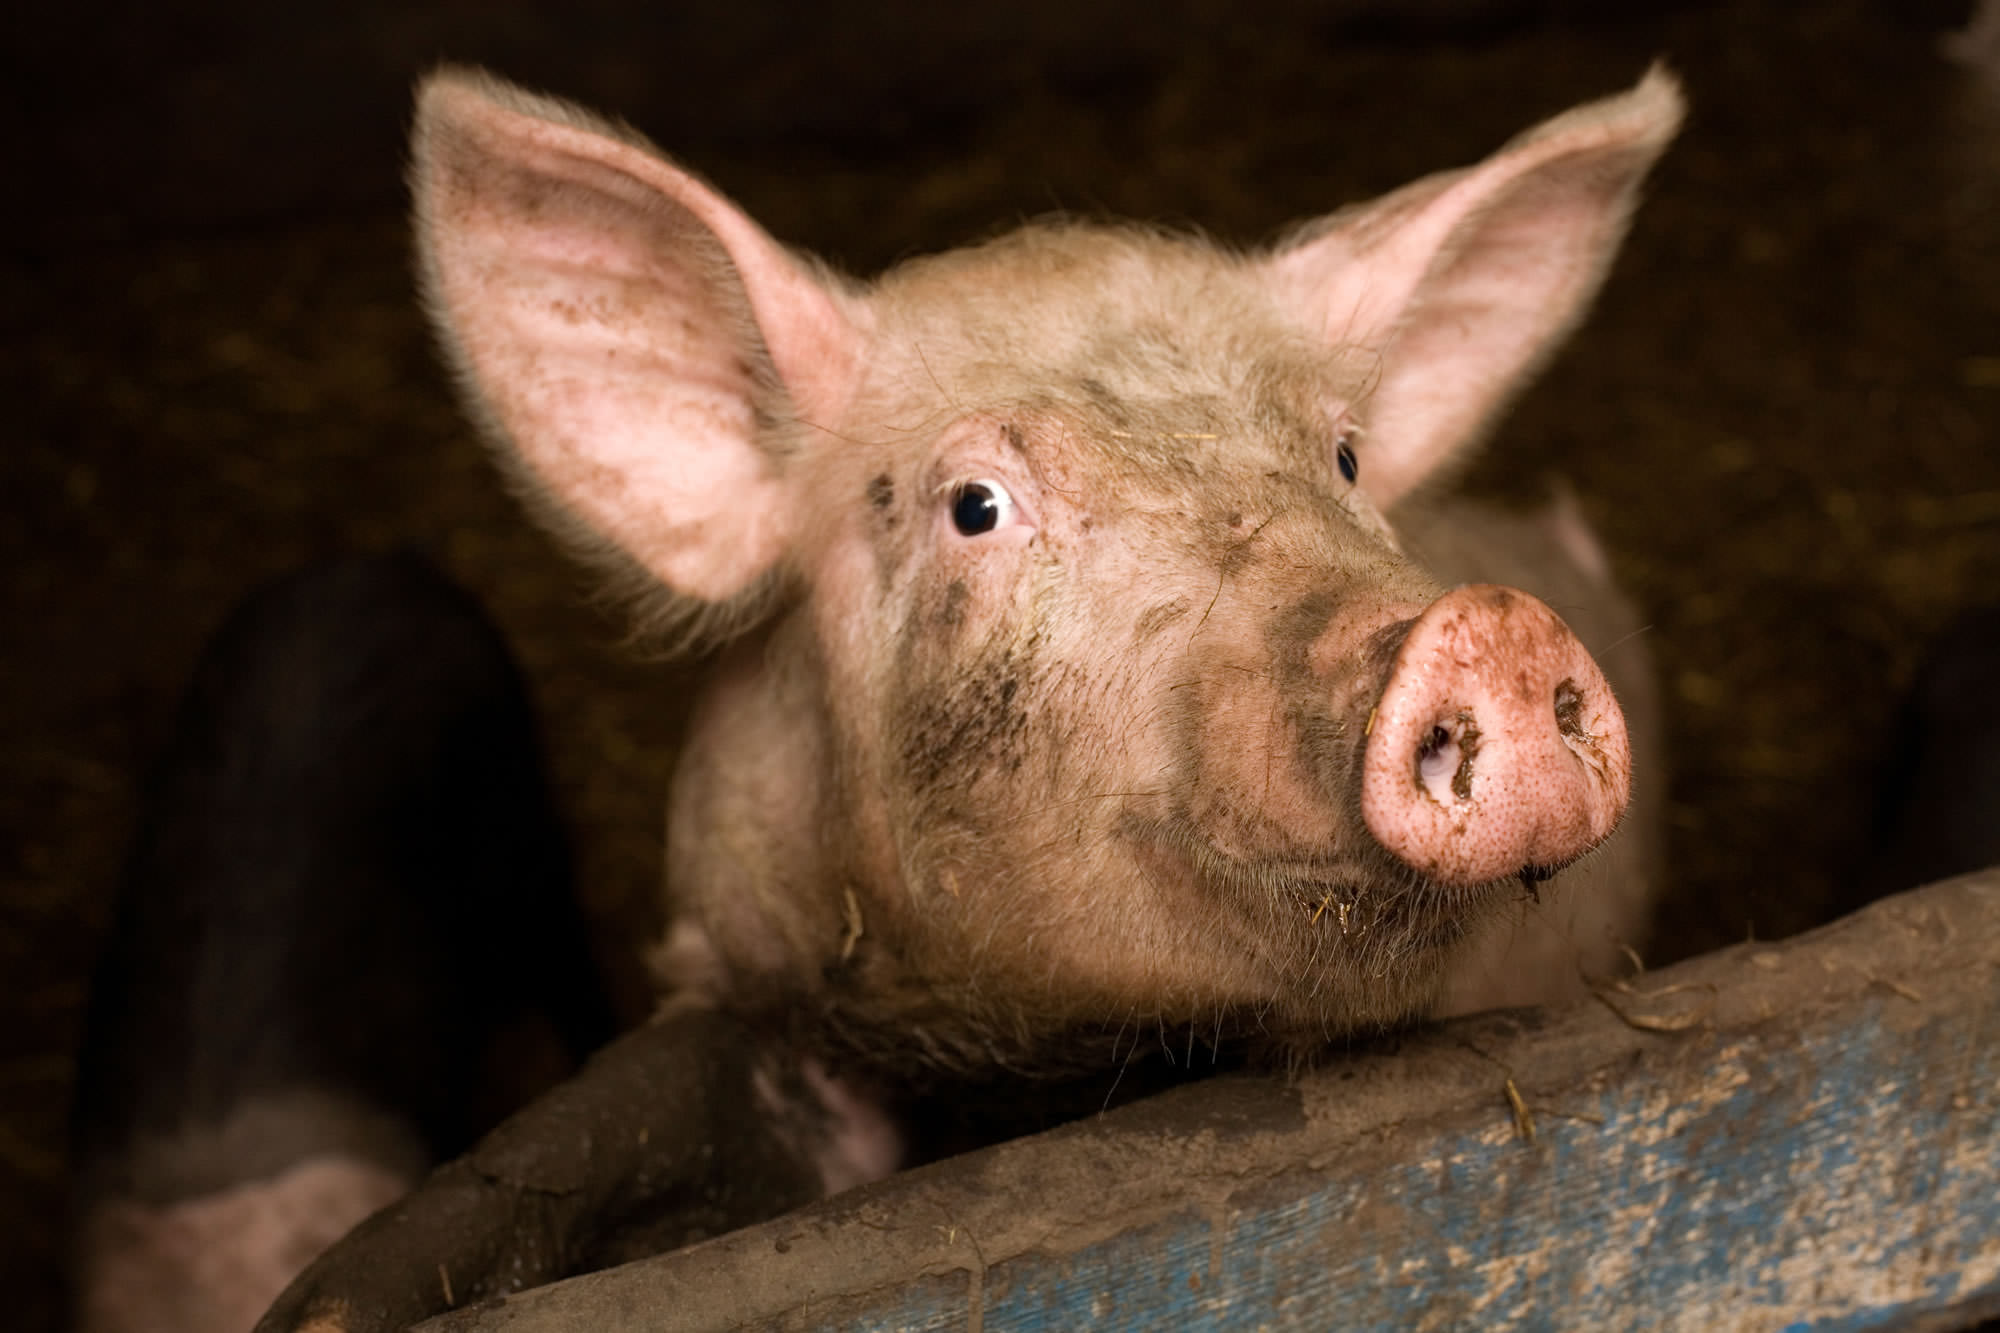 Project Pig | Compassion in World Farming